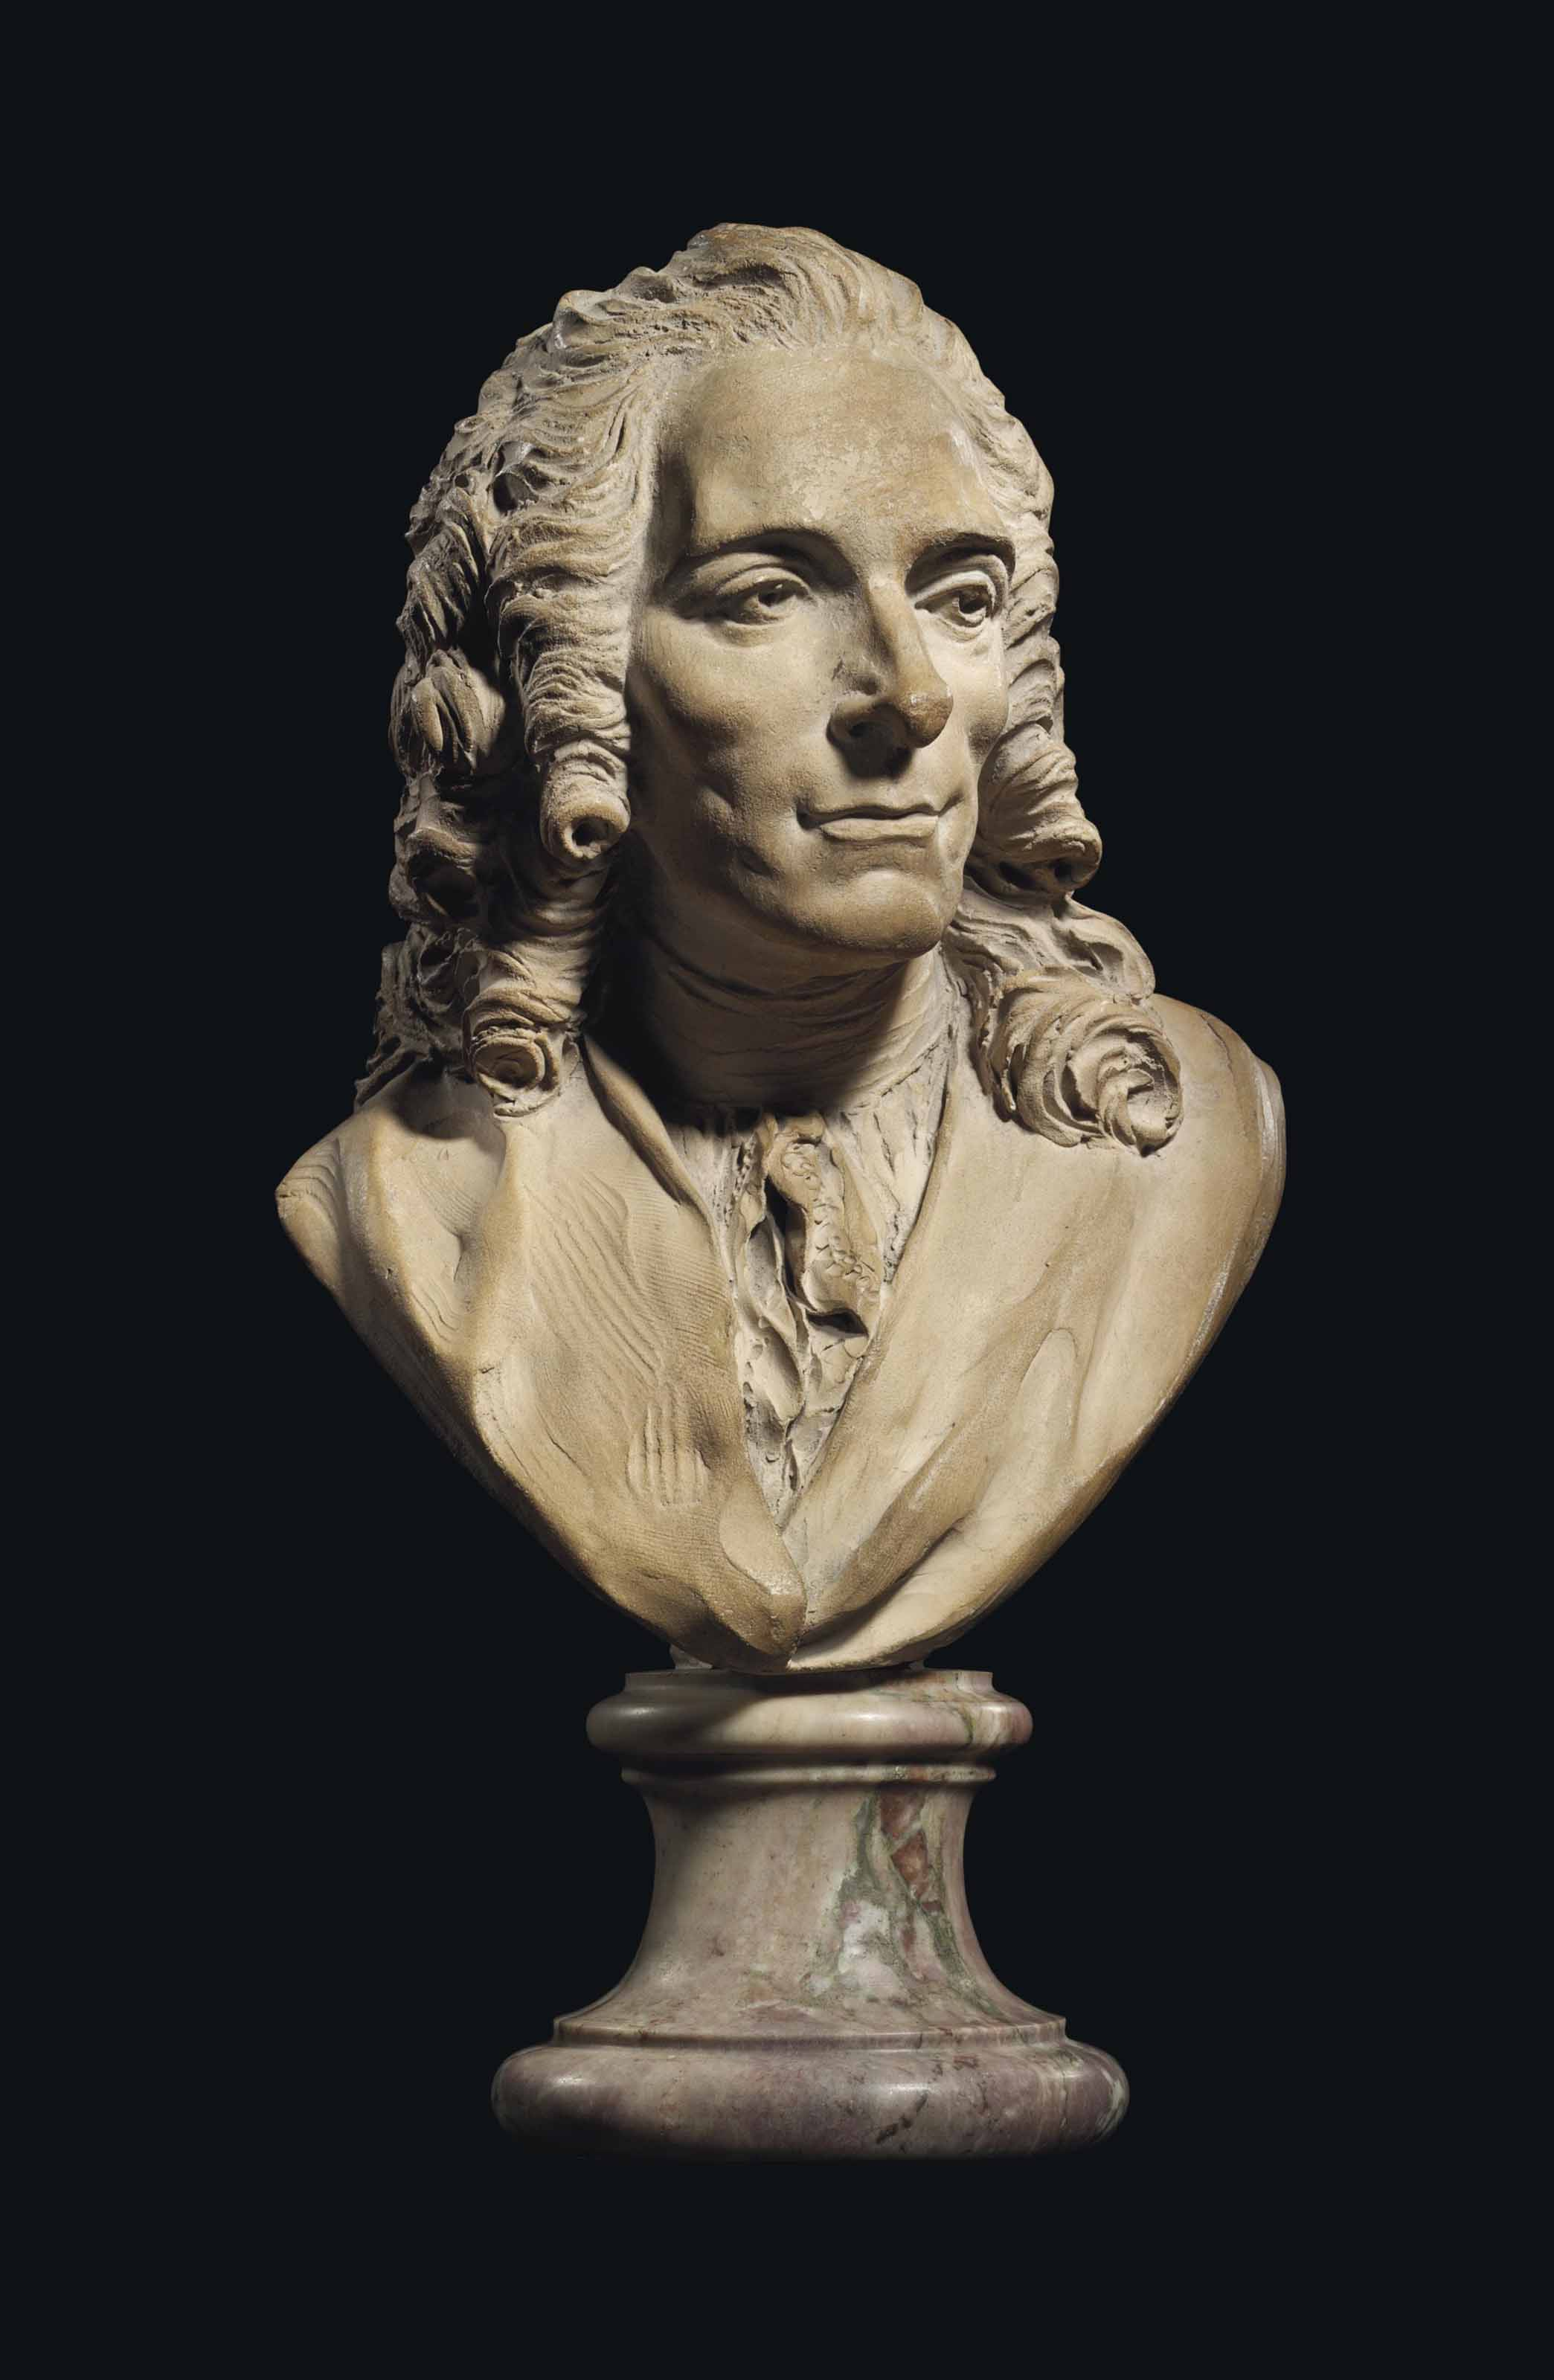 A TERRACOTTA BUST OF VOLTAIRE